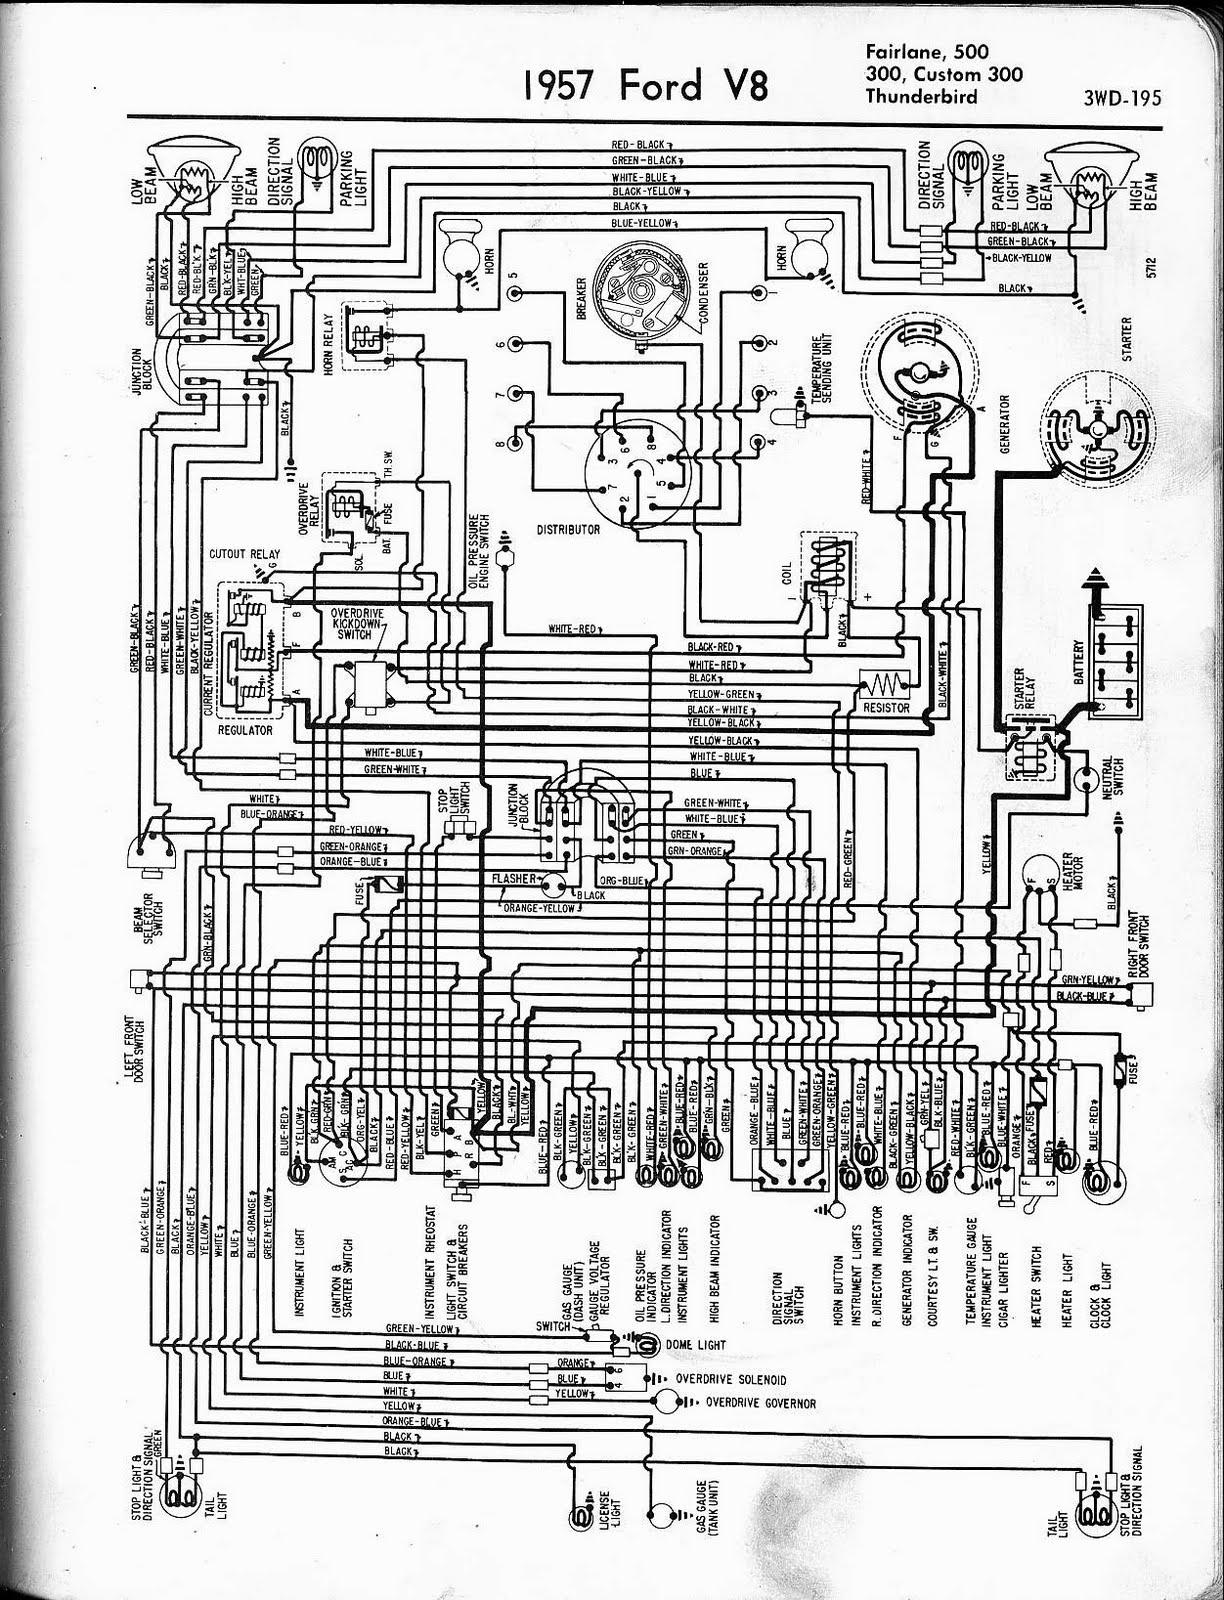 1969 Mercury Wire Diagrams Auto Electrical Wiring Diagram 1957 Chevy Photo Album Images Free Ford V8 Fairlane Custom300